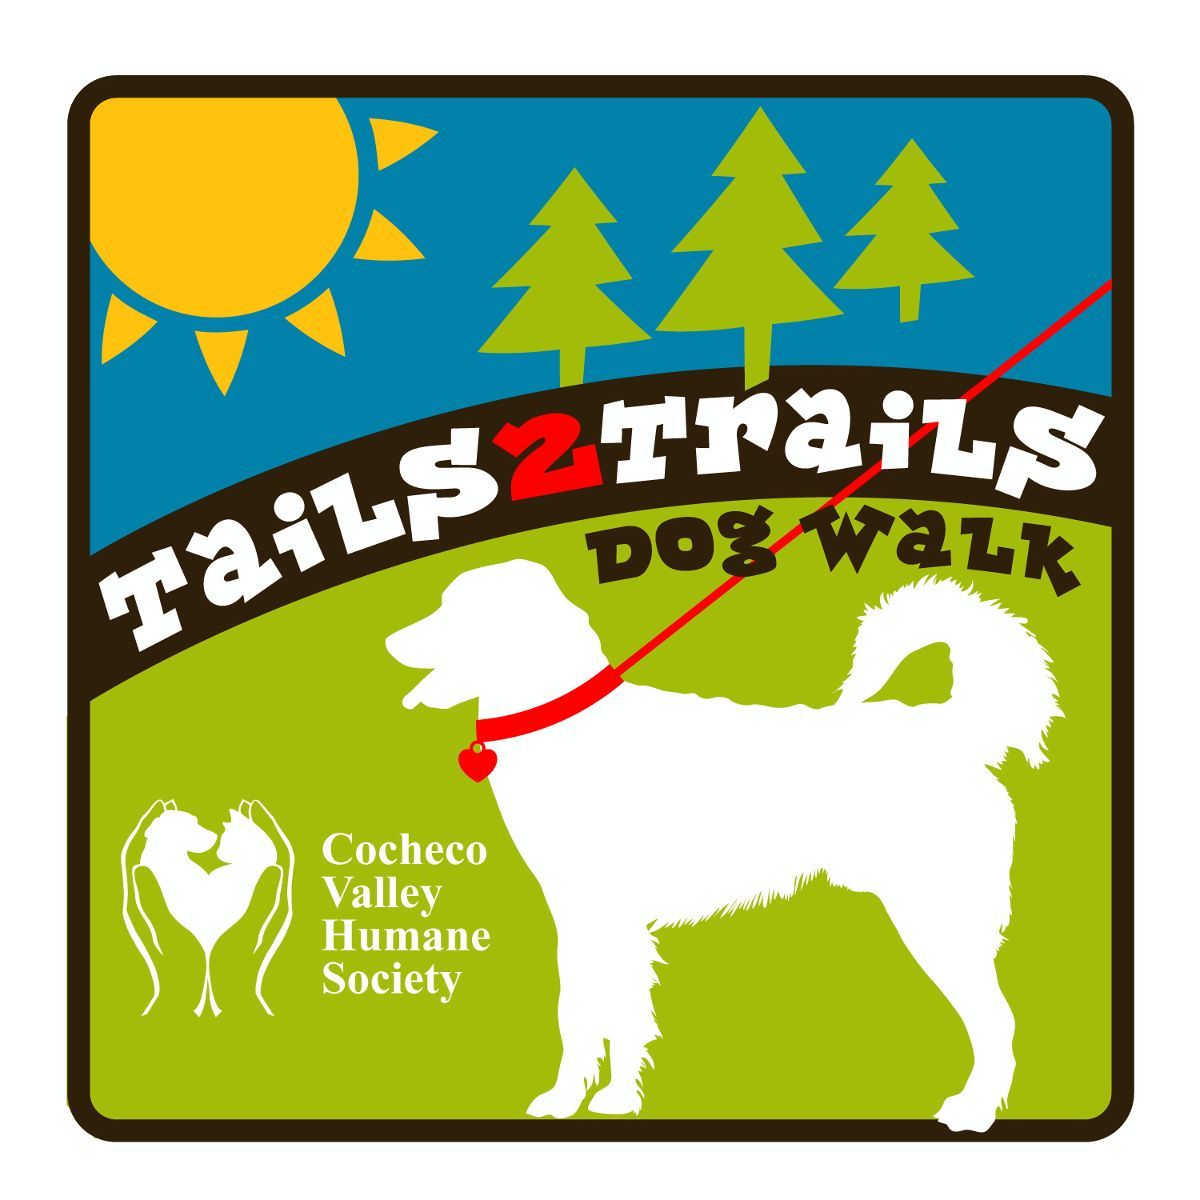 Our Annual Dog Walk Will Take Place On Sunday June 23rd In The Strafford County Complex Humane Society Dogs Small Animal Rescue Cat Adoption